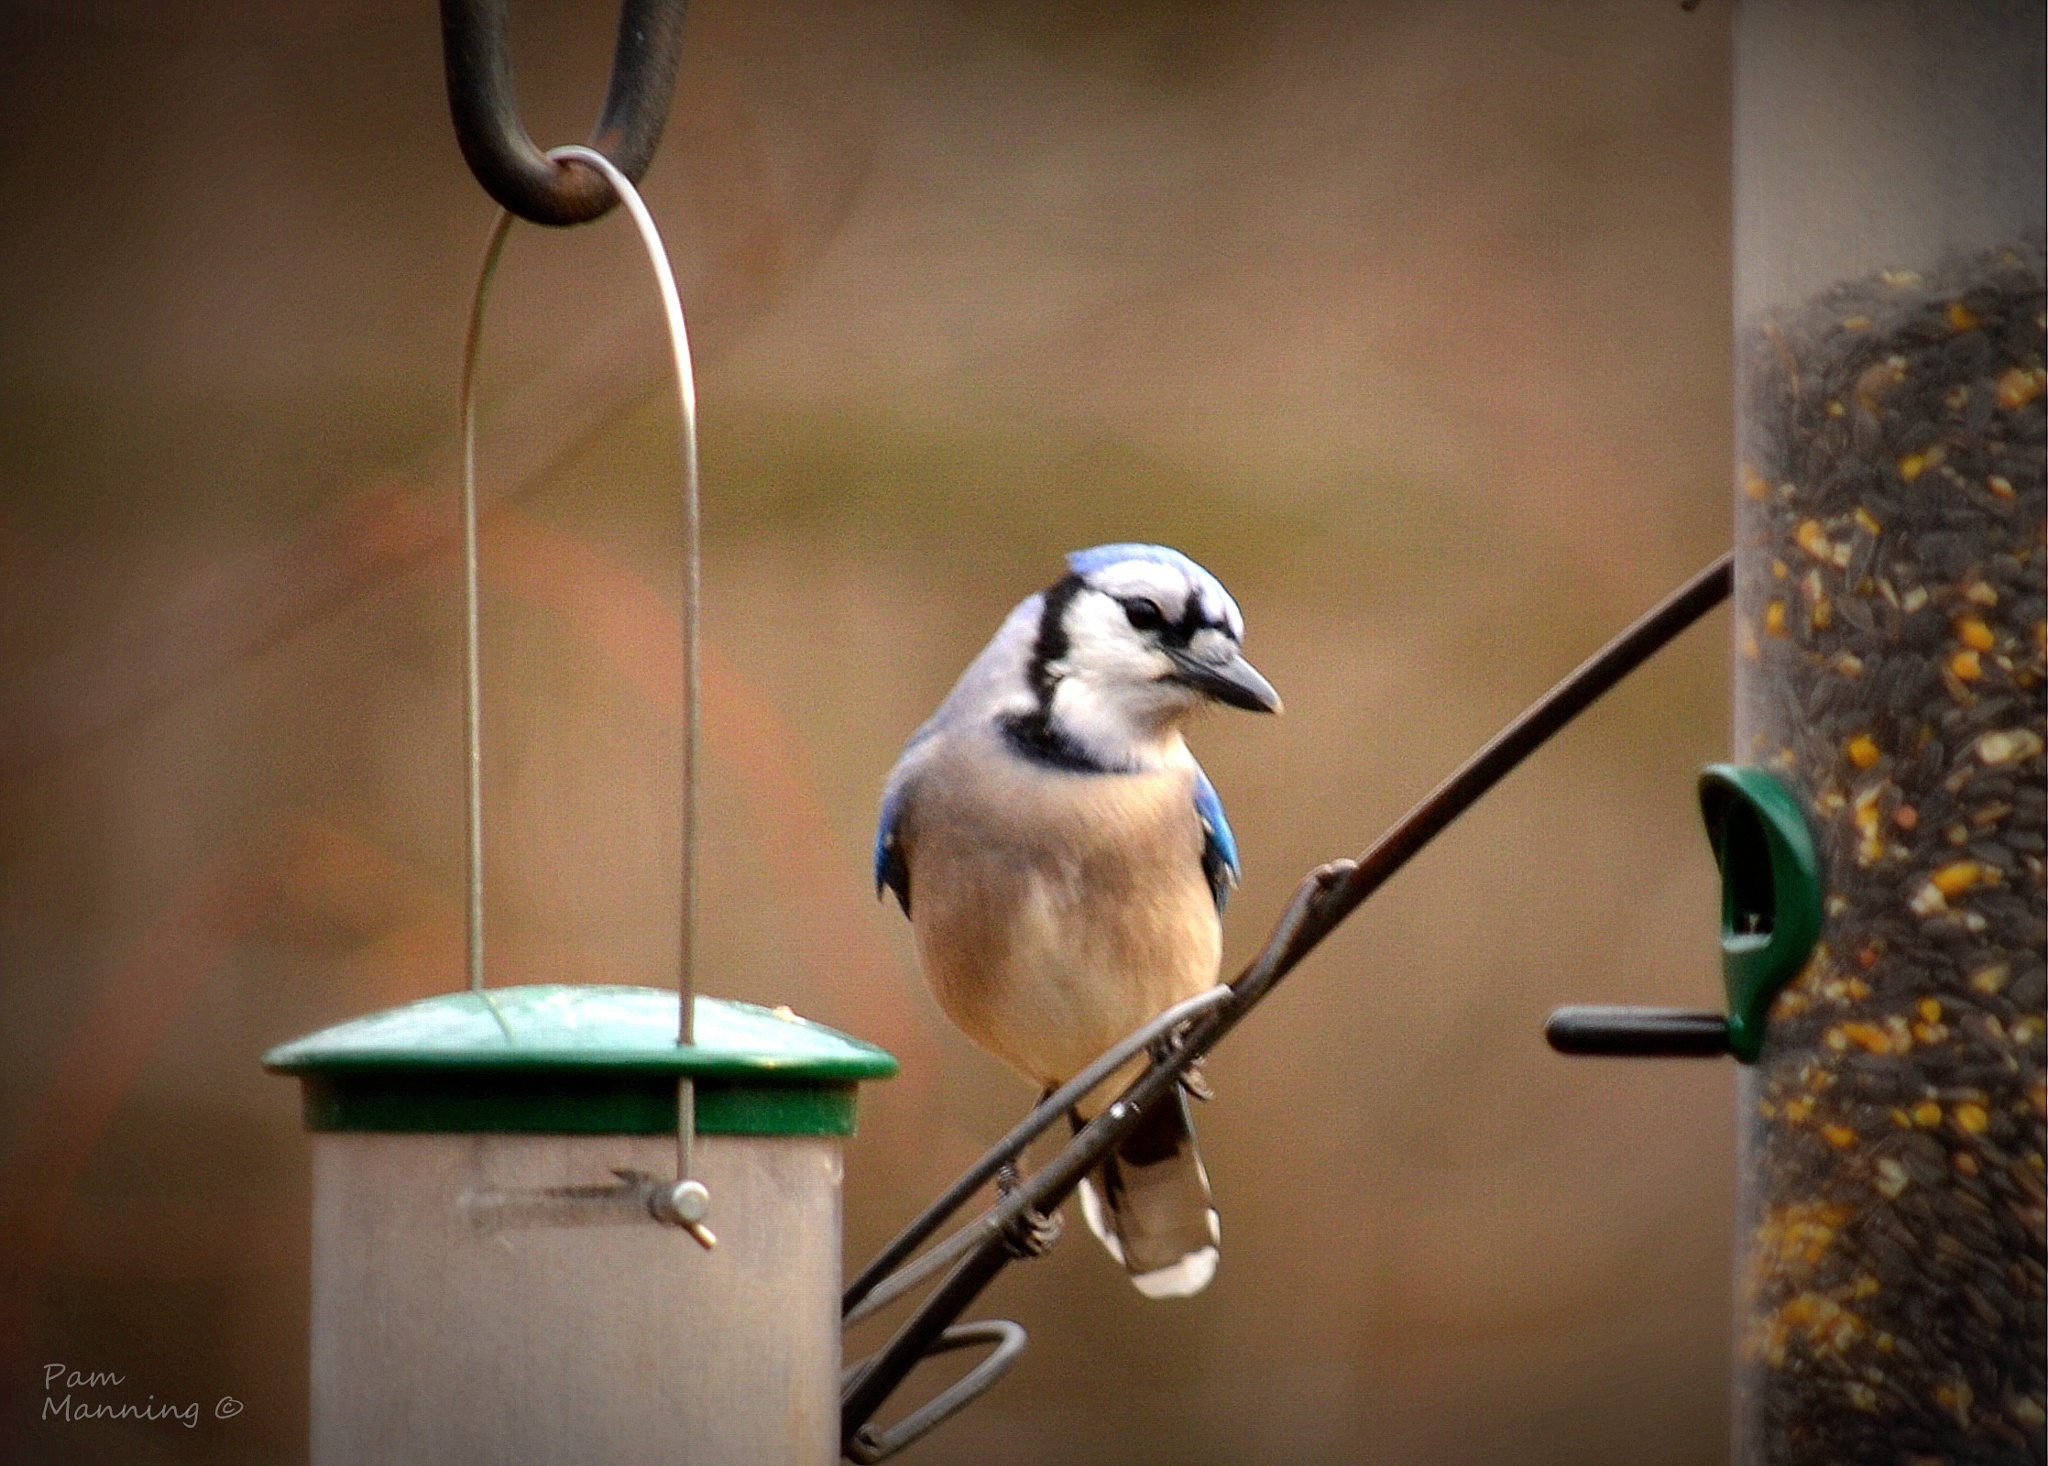 Blue Jay at feeder 1 by pam.satterfieldmanning